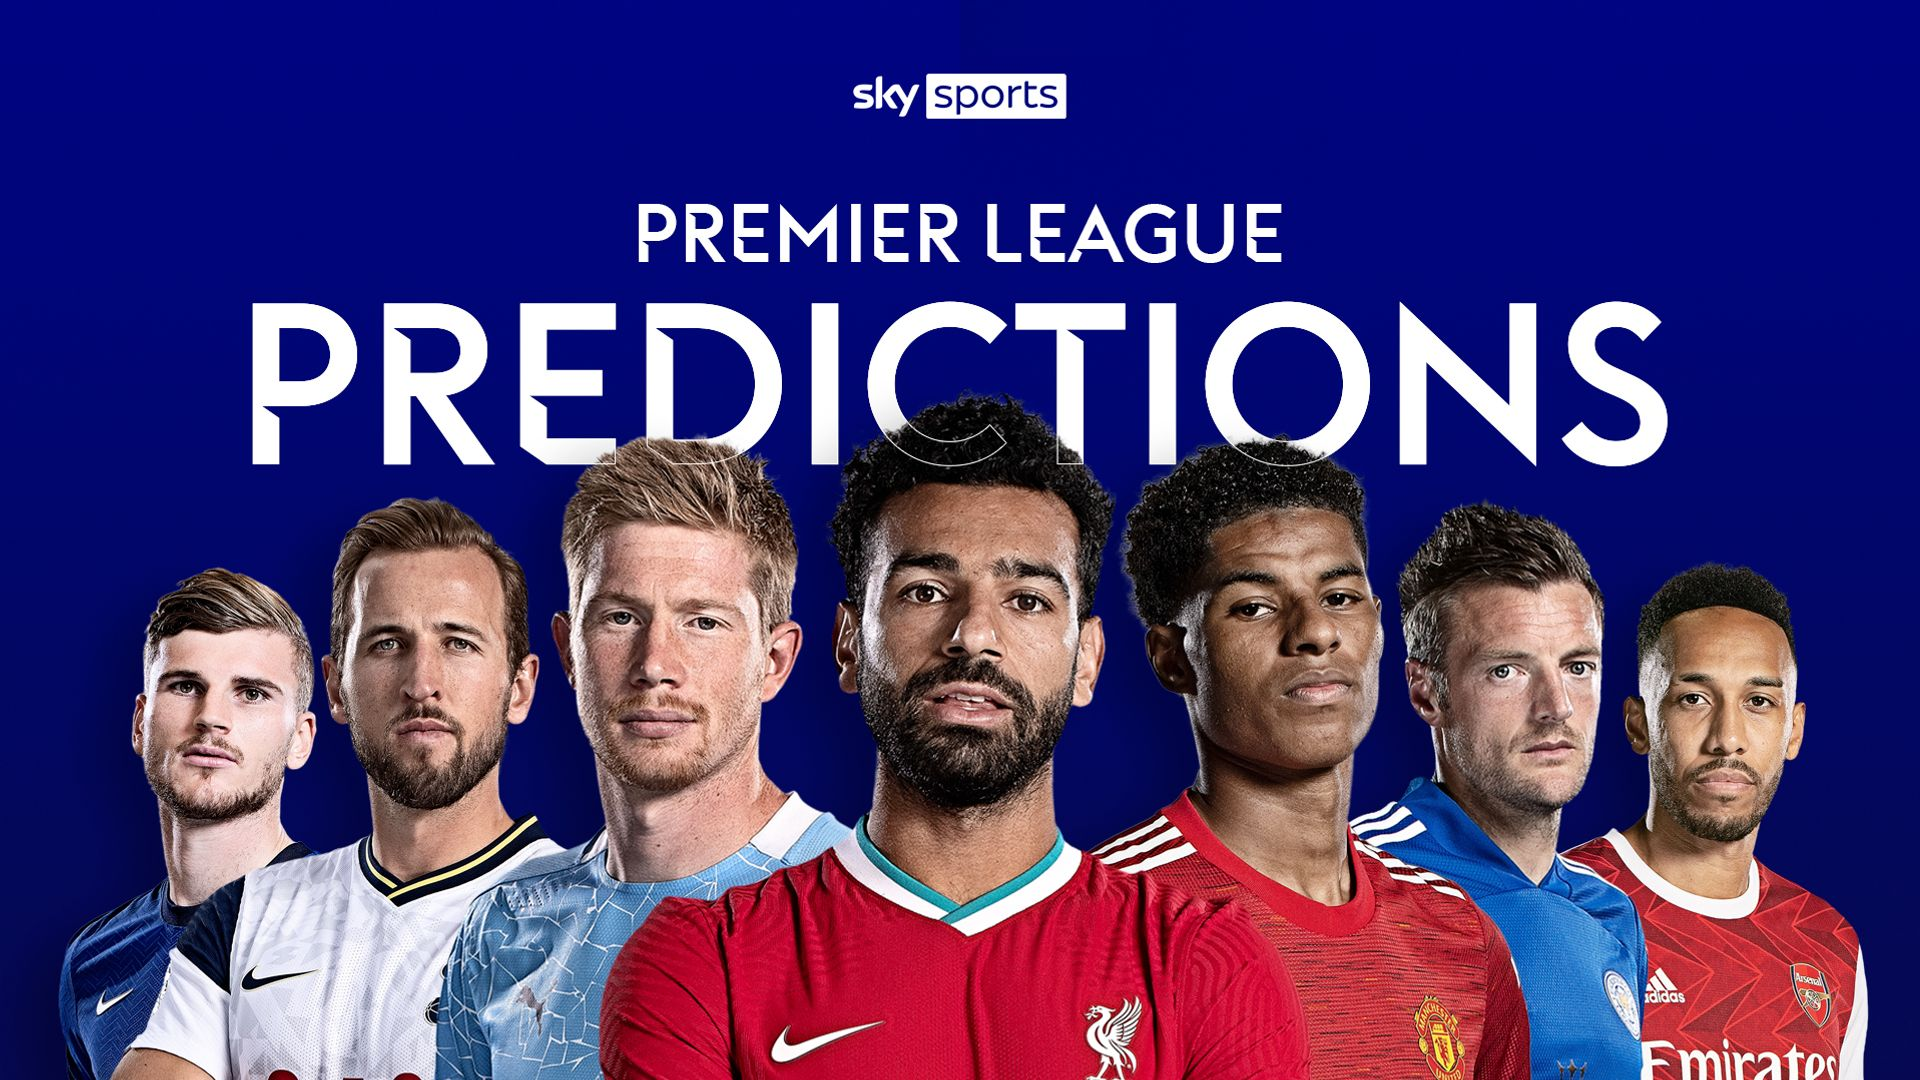 PL predictions: De Bruyne to outshine Bruno